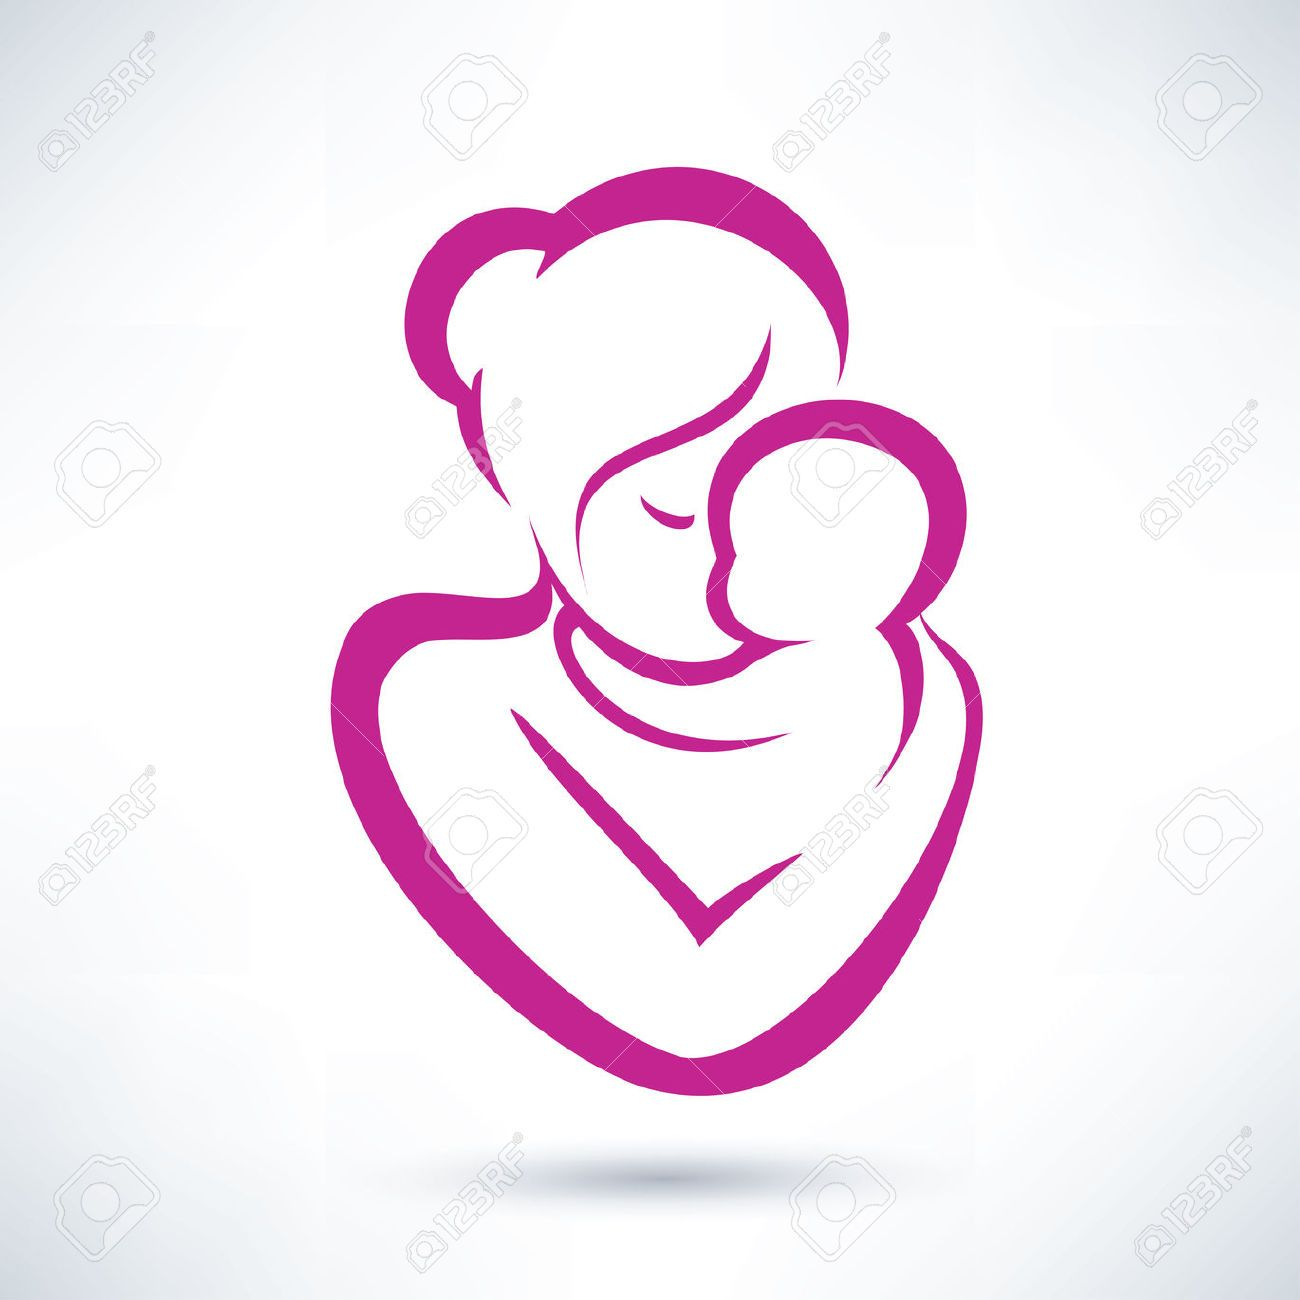 mom and baby clipart - Google Search | Crafts | Pinterest ...